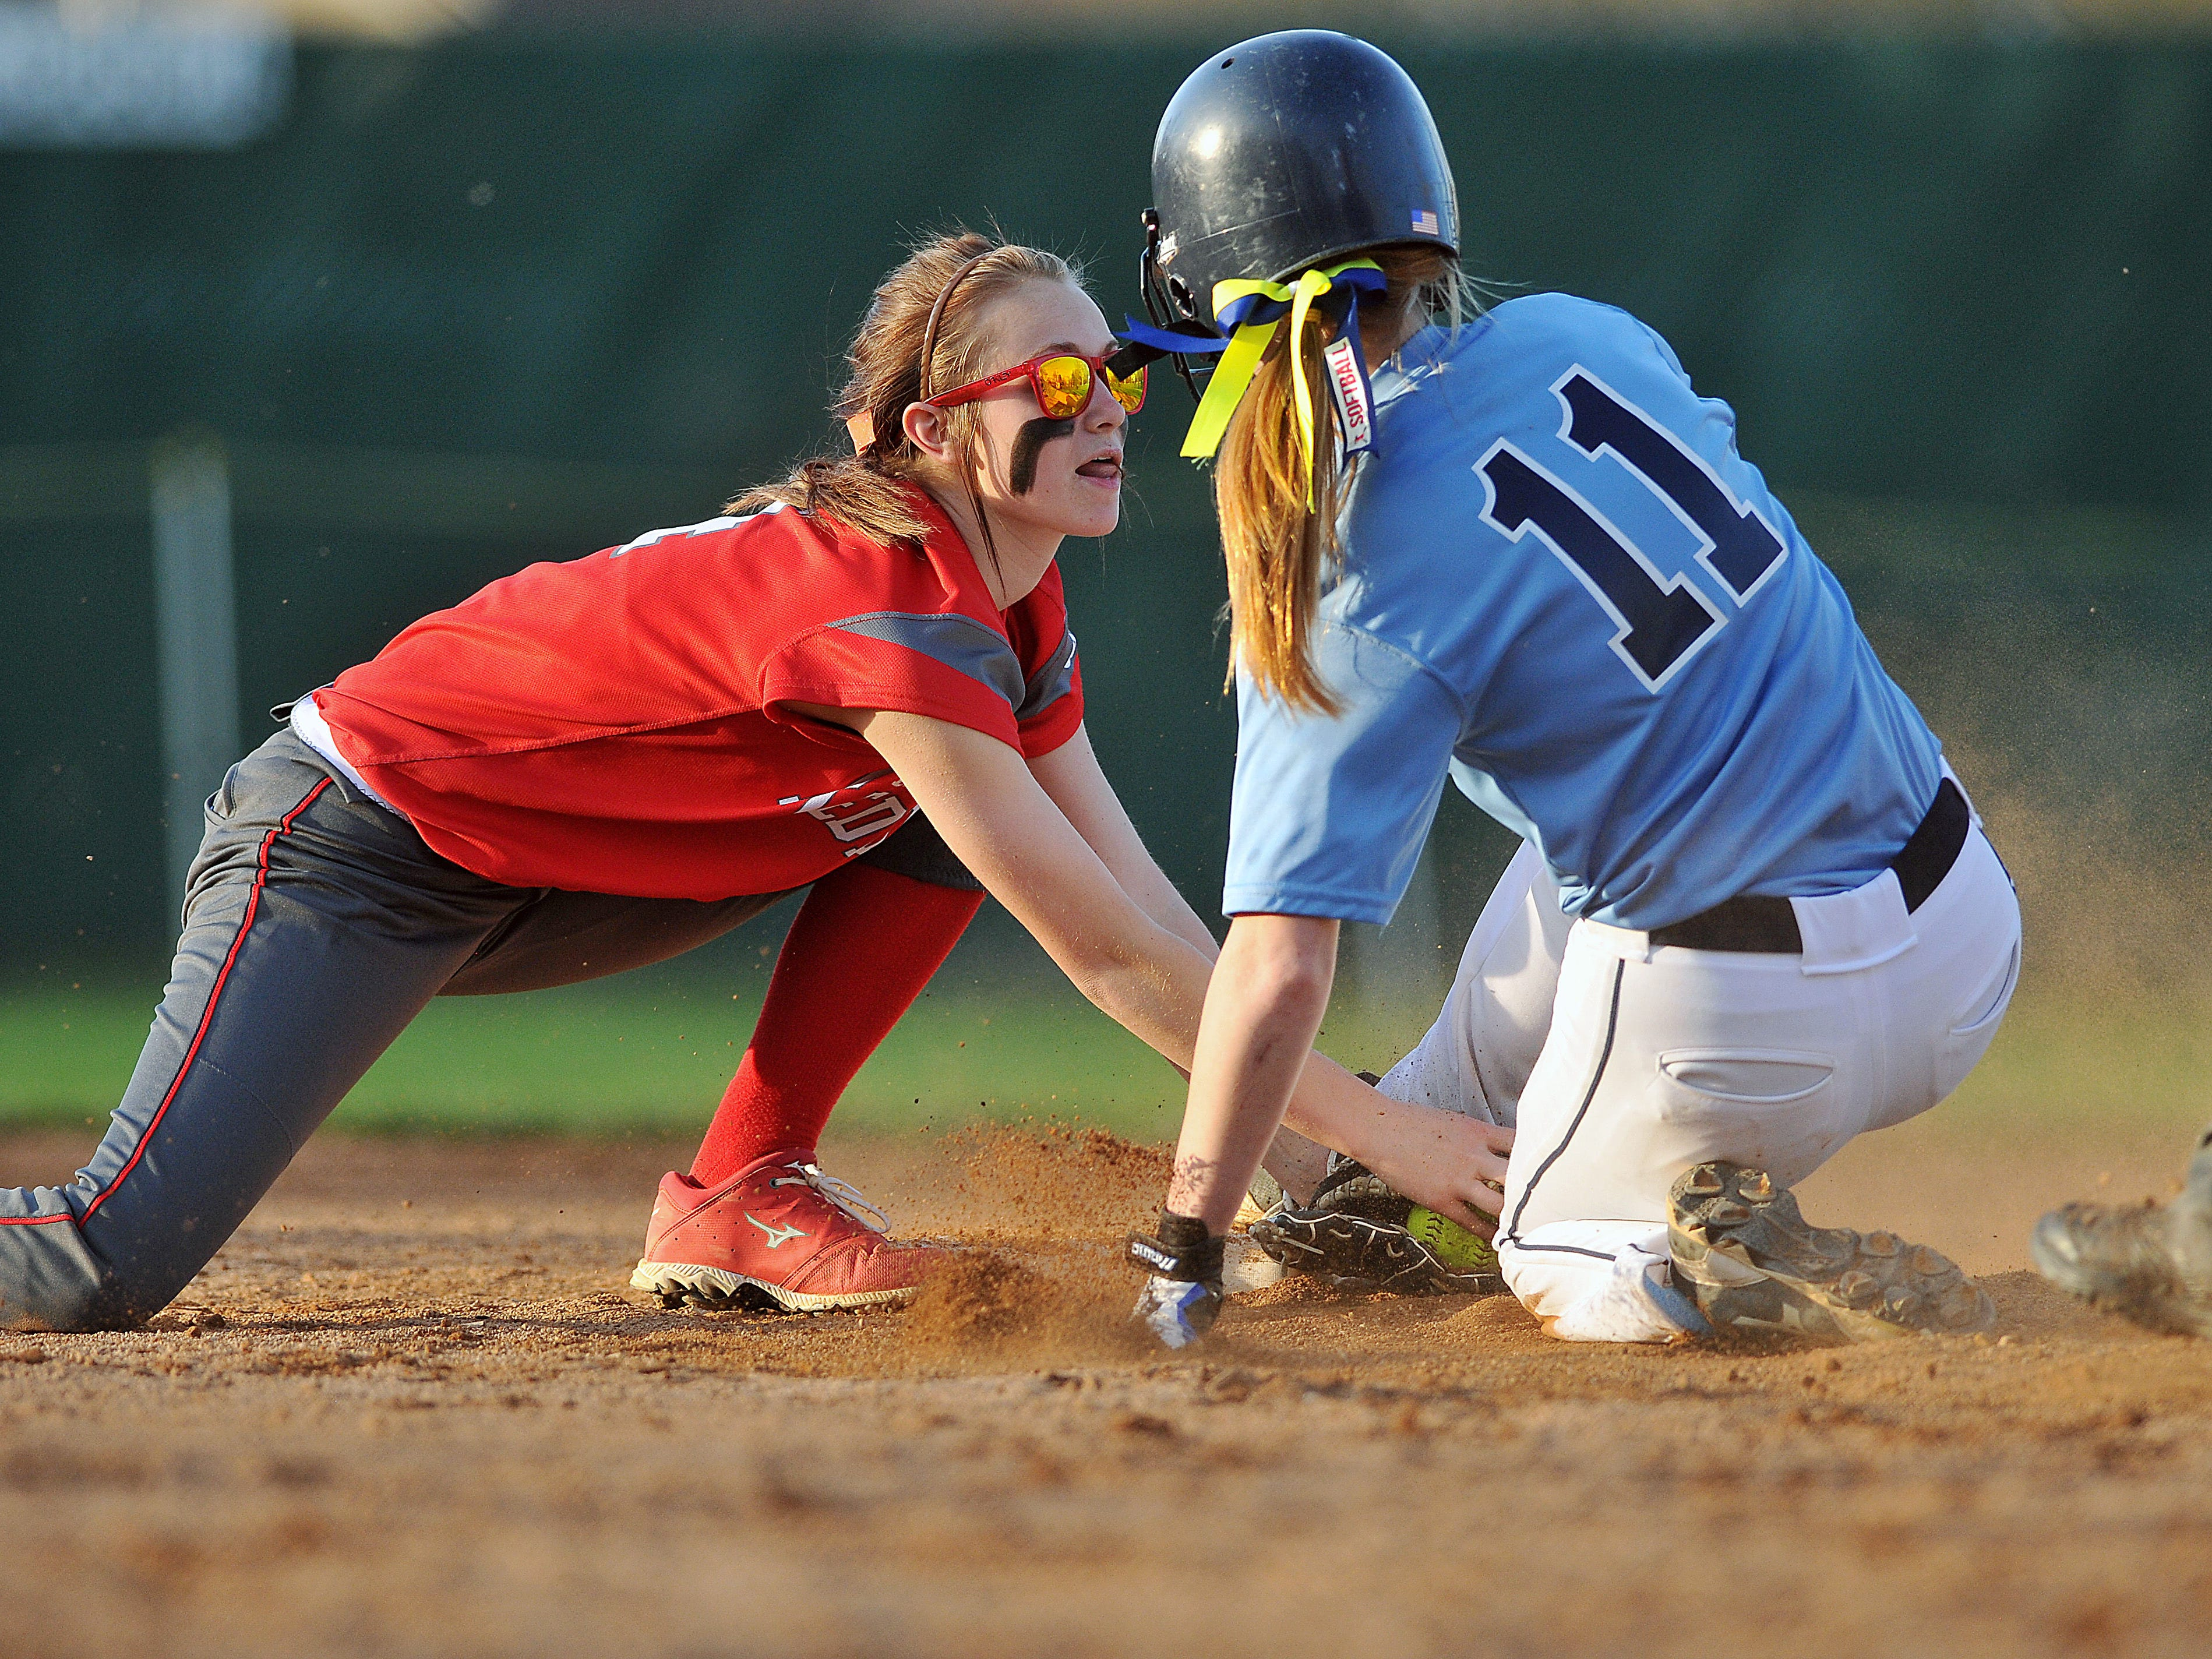 Hillsdale's Adrianna Rogers slides into second against Loudonville during the Wendy's Spring Classic at Brookside Park Friday.